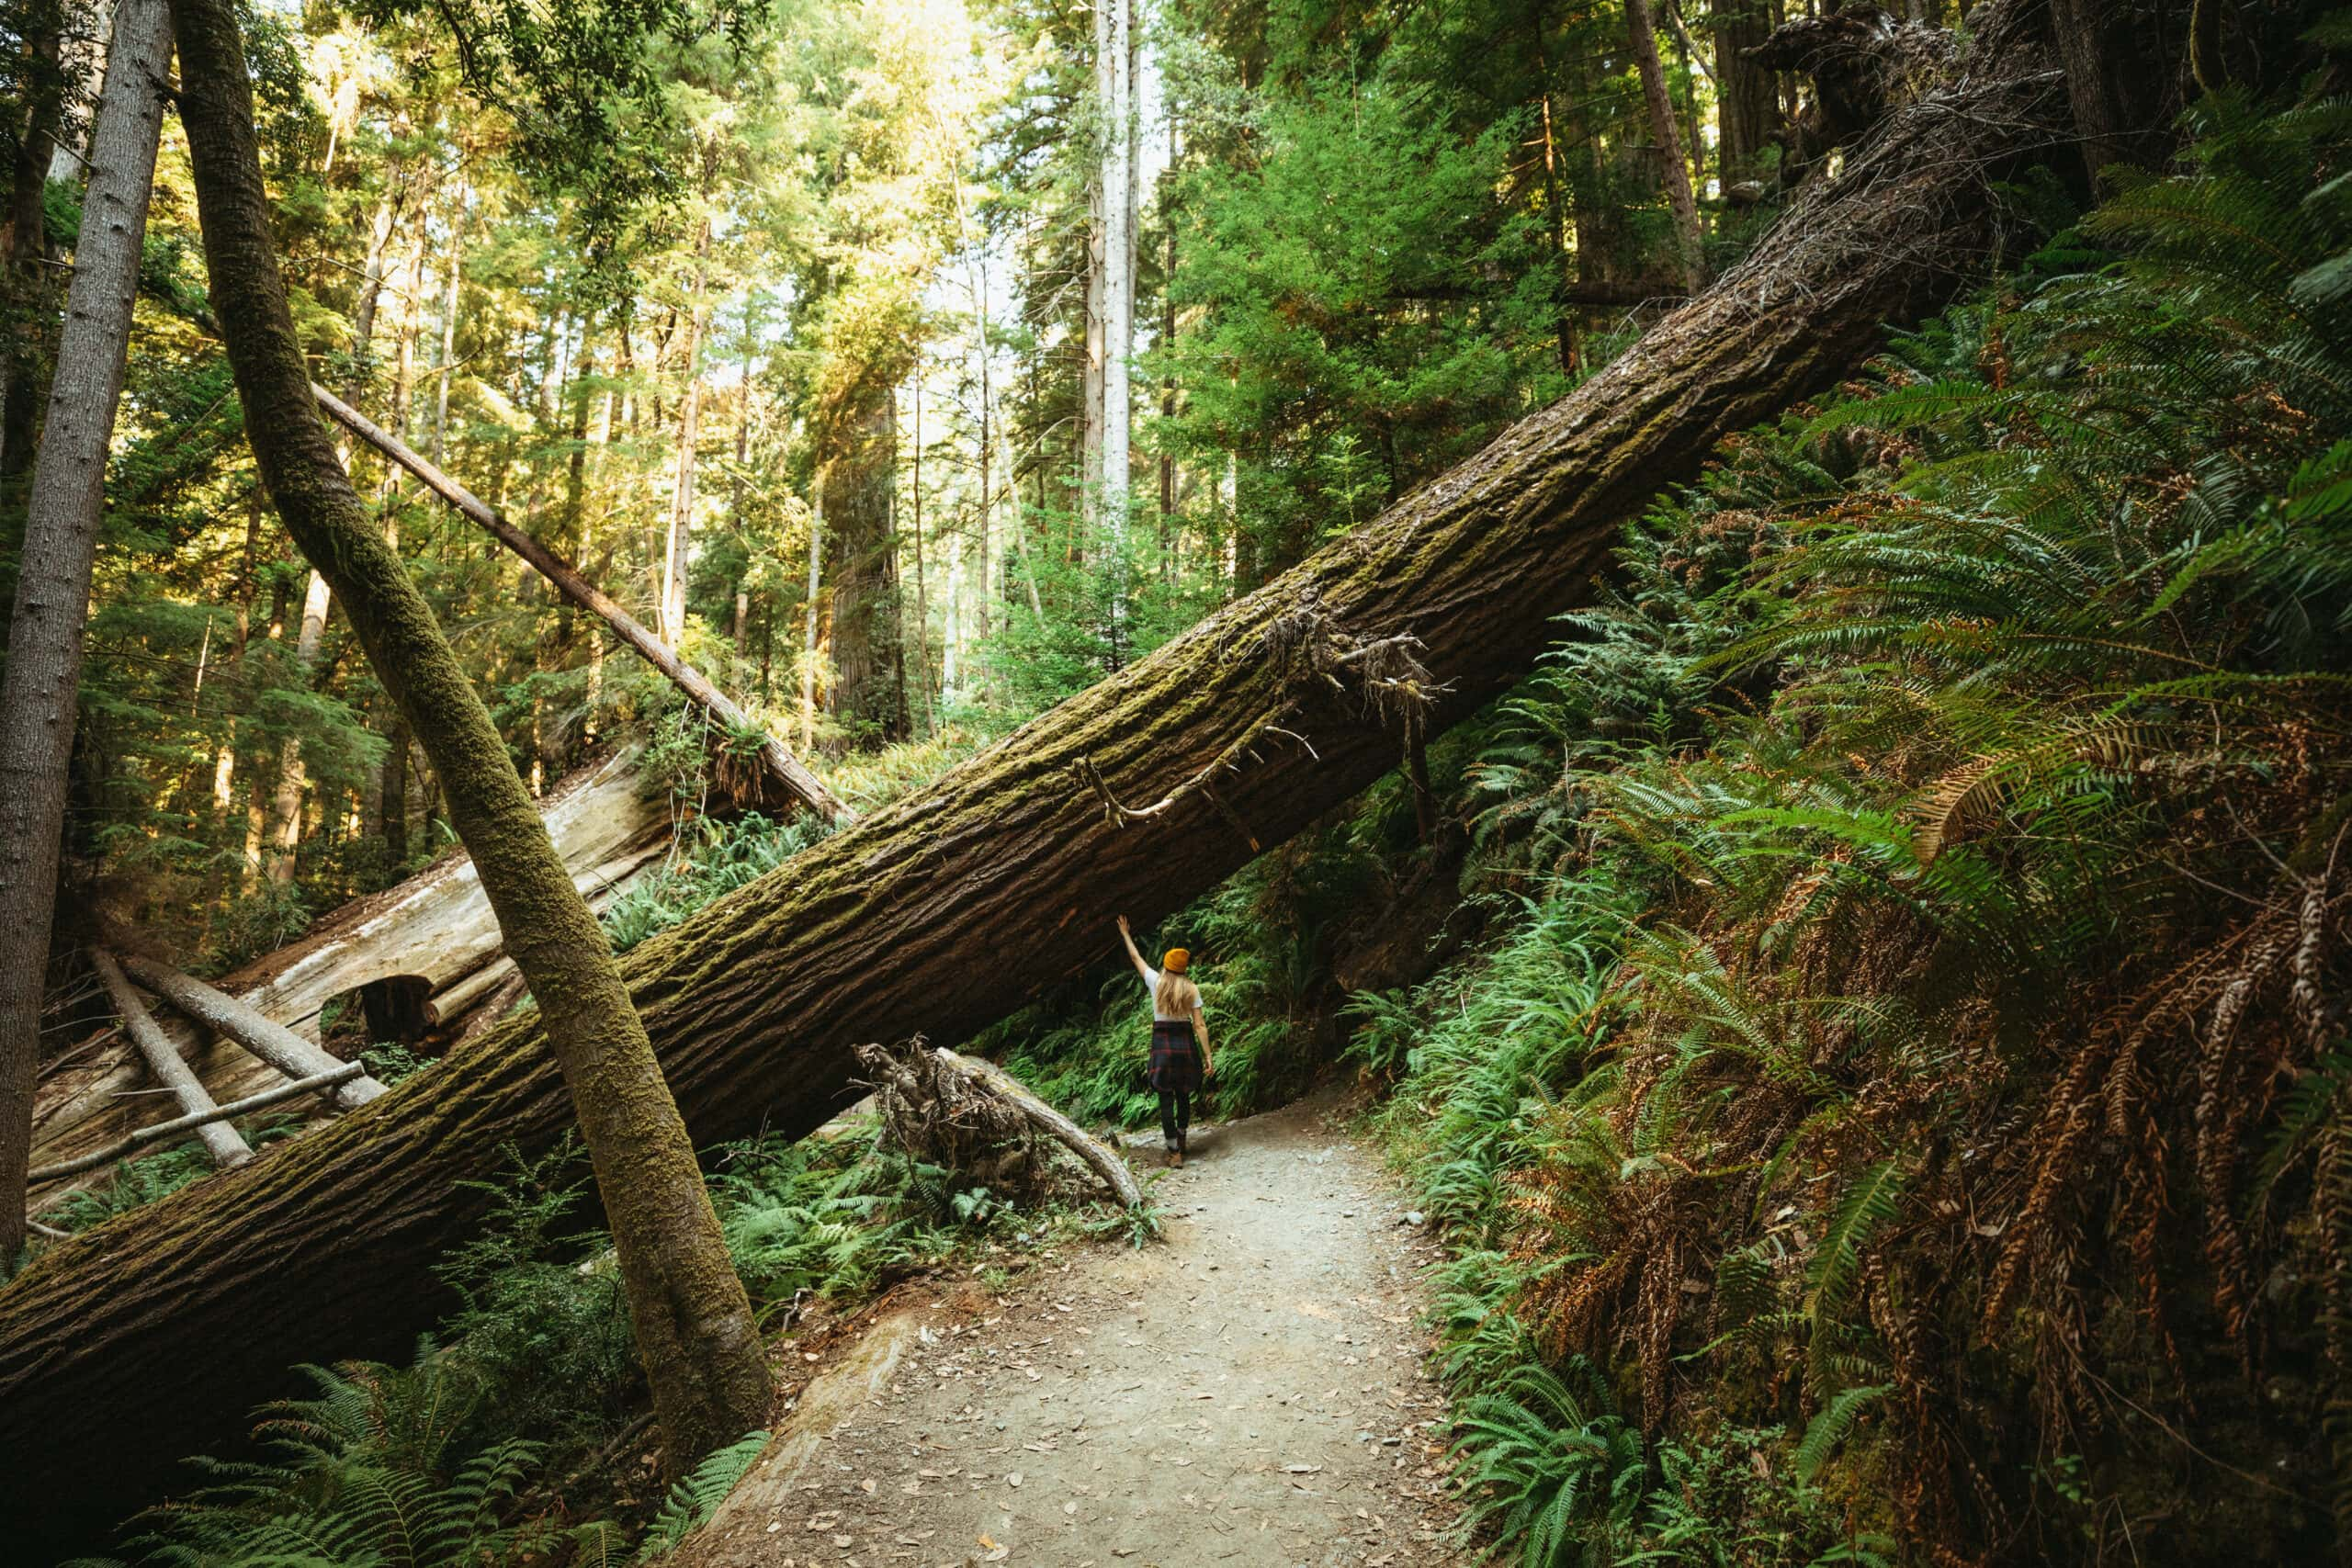 Where You Should Travel in The Pacific Northwest, Based on Your Zodiac Sign